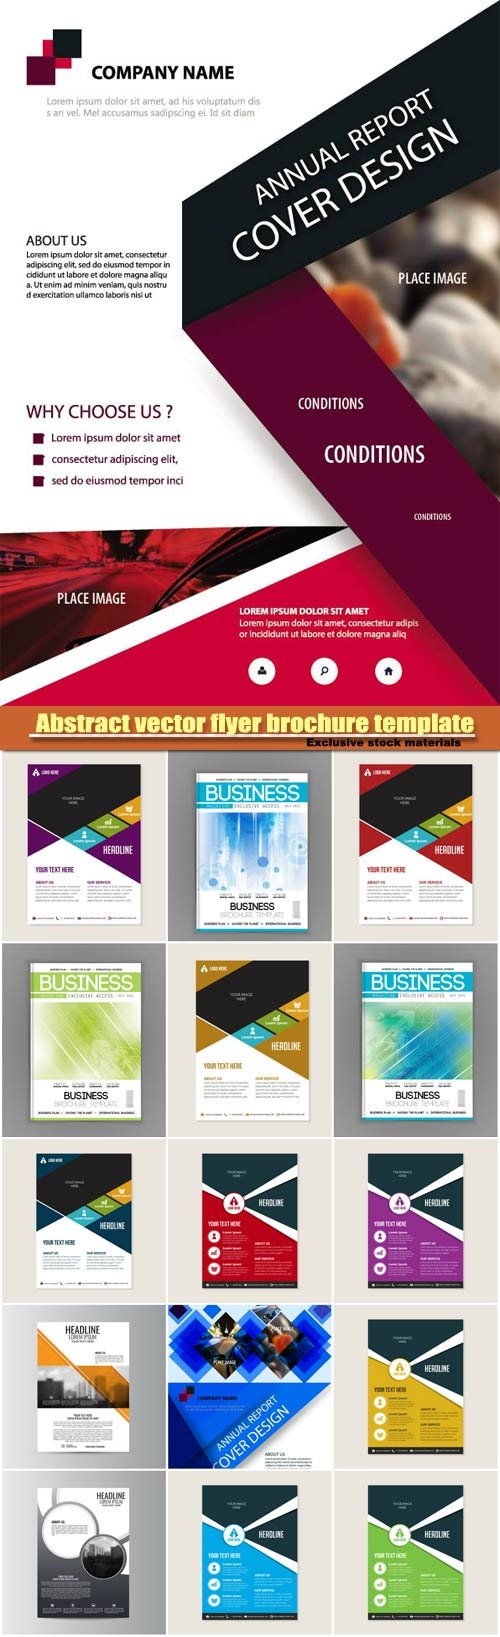 Abstract vector flyer brochure template design background